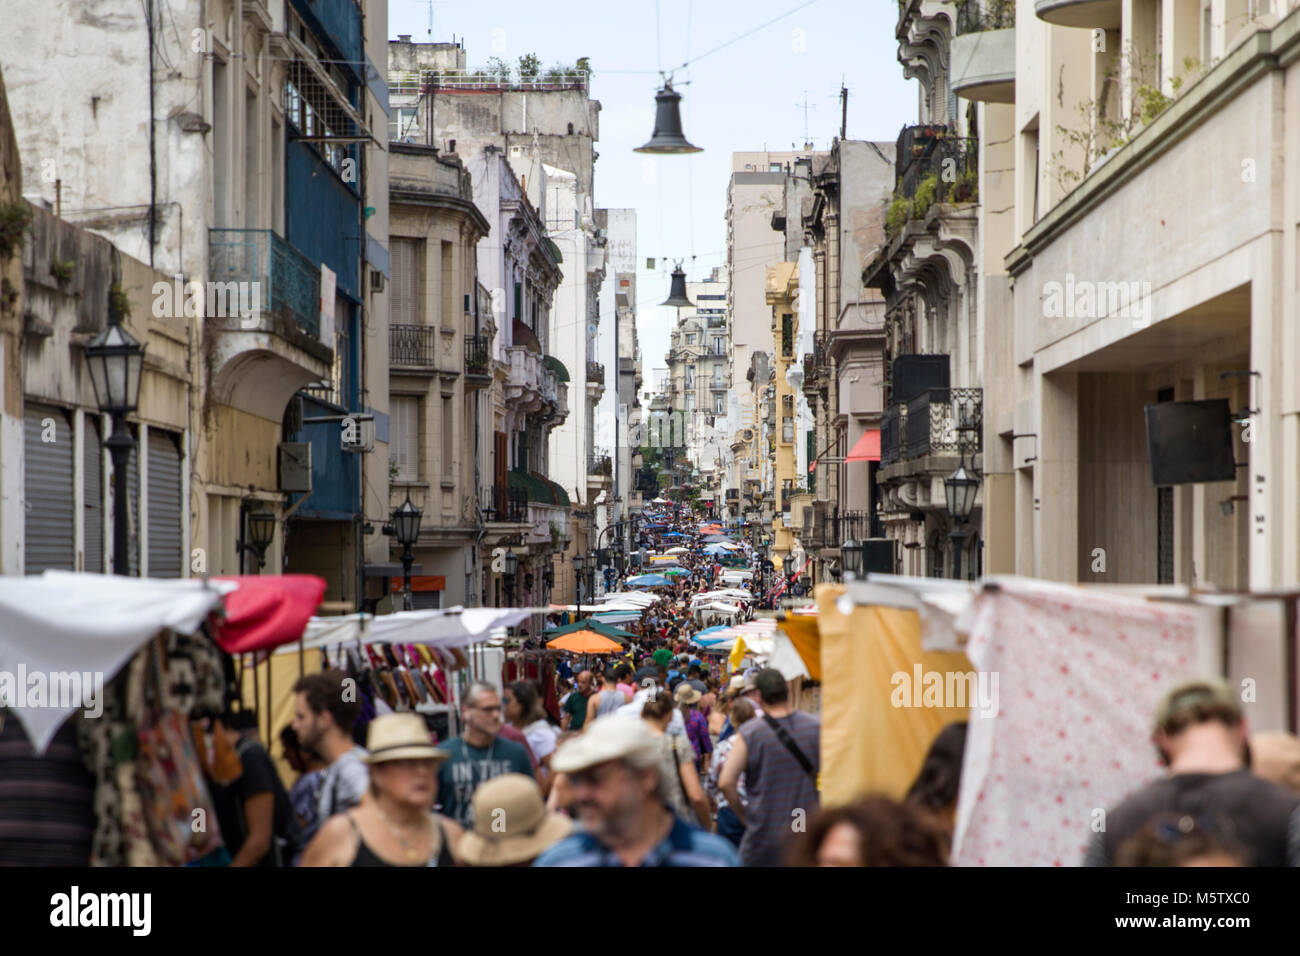 BUENOS, AIRES, ARGENTINA - JANUARY 21, 2018: Unidentified people on San Telmo flea market in Buenos Aires, Argentina. - Stock Image